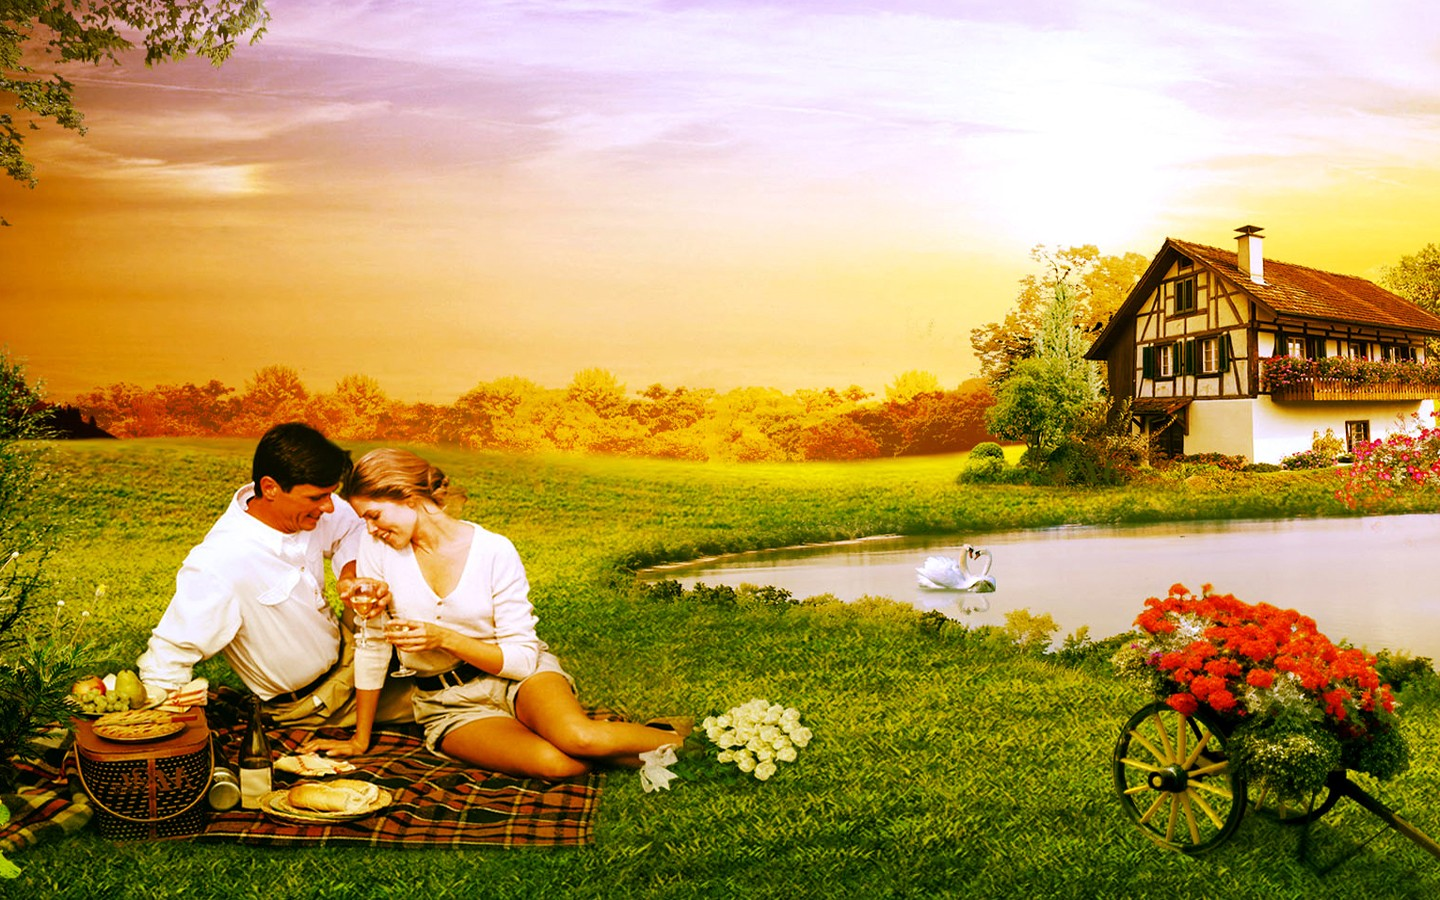 ... through these Beautiful Romantic Love Couple Images Wallpapers